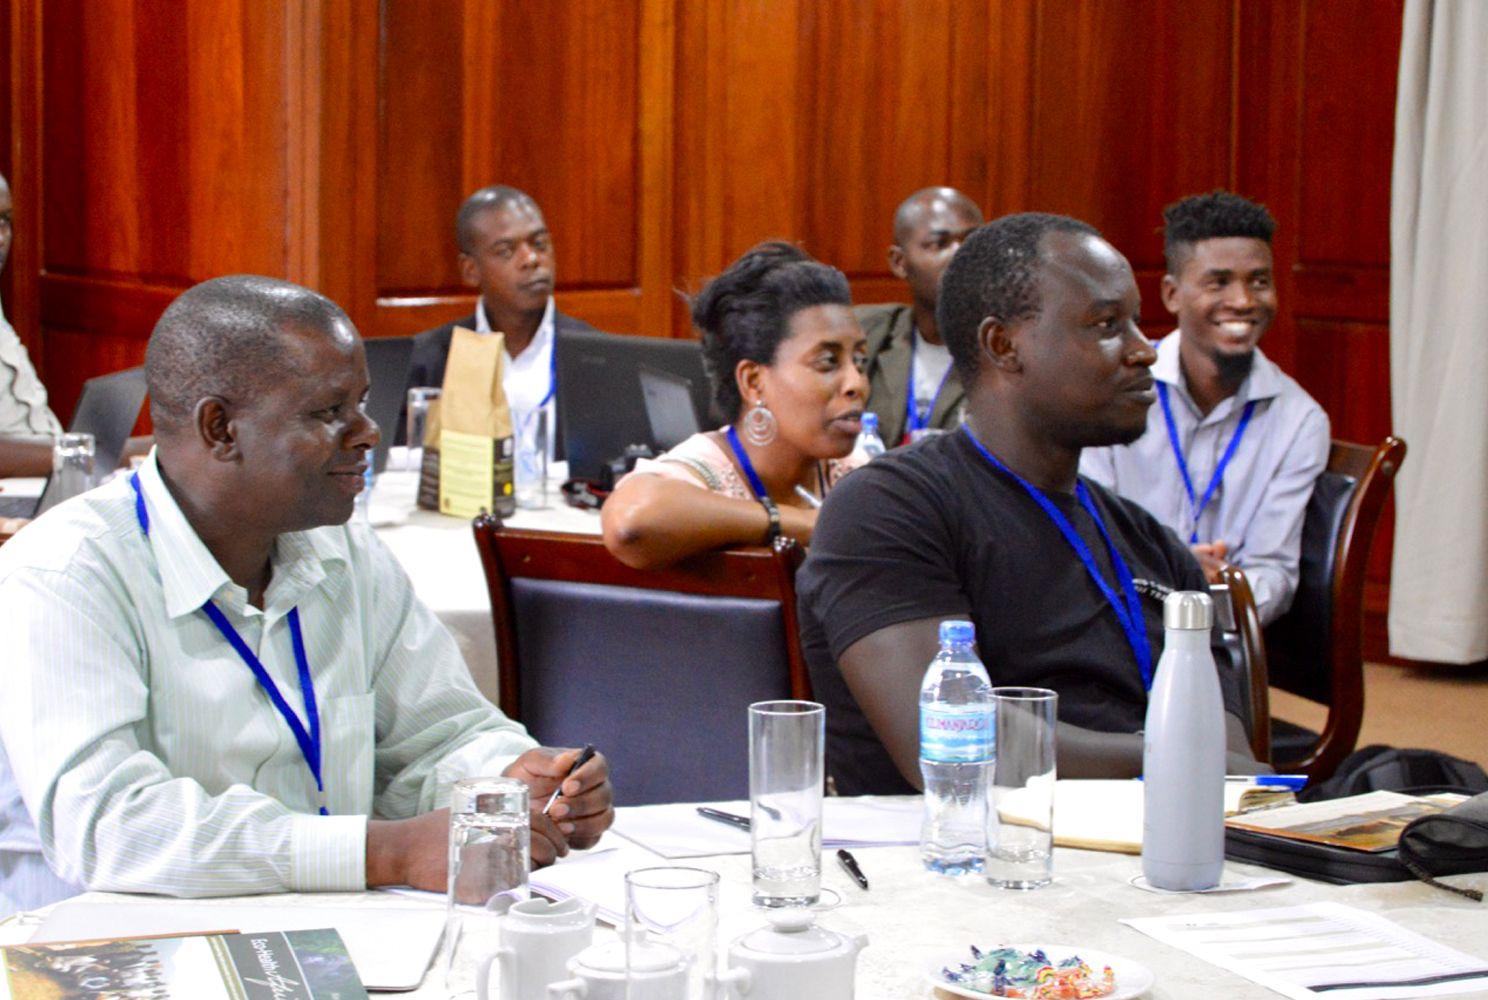 Participants in the Community Engagement in Conservation workshop